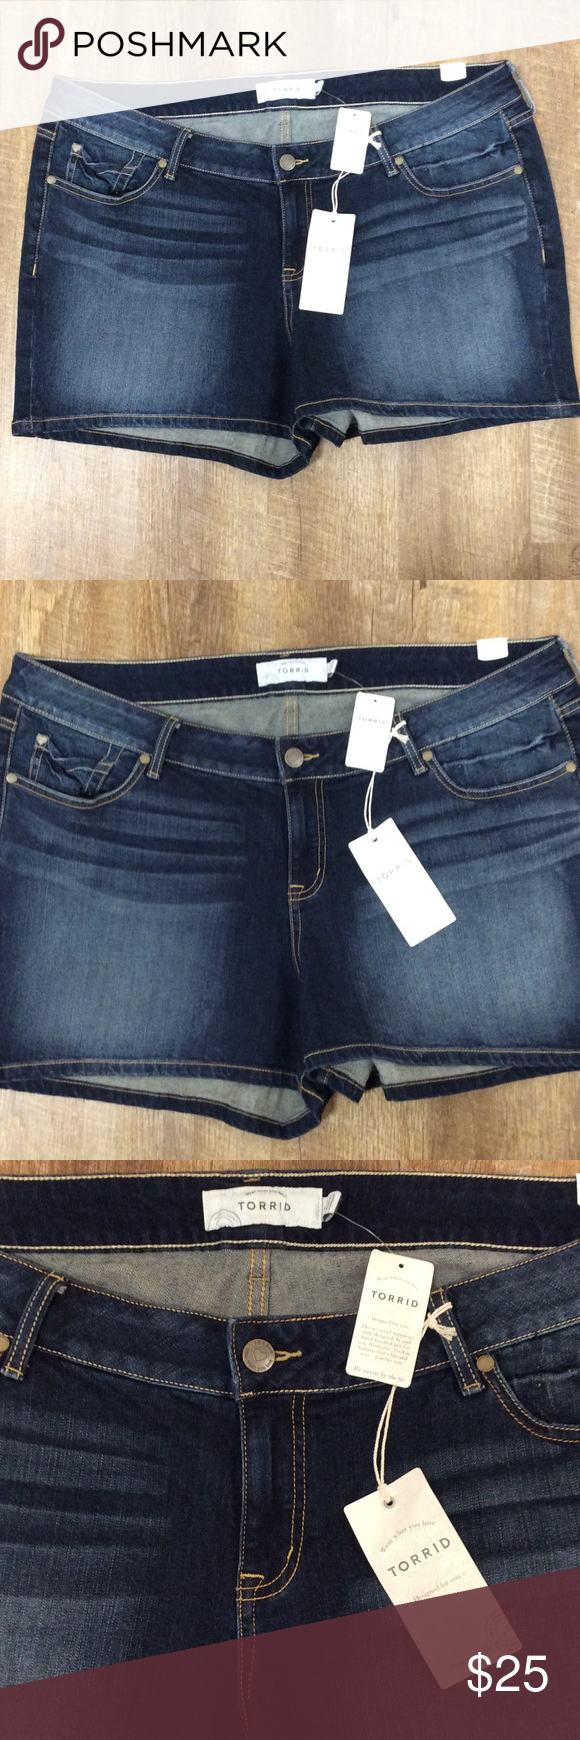 cf3f0130c47 Torrid Dark Wash Distressed Denim Shorts NWT dark Distressed Denim shorts  from Torrid size 22. Measurements from top to bottom seam 13